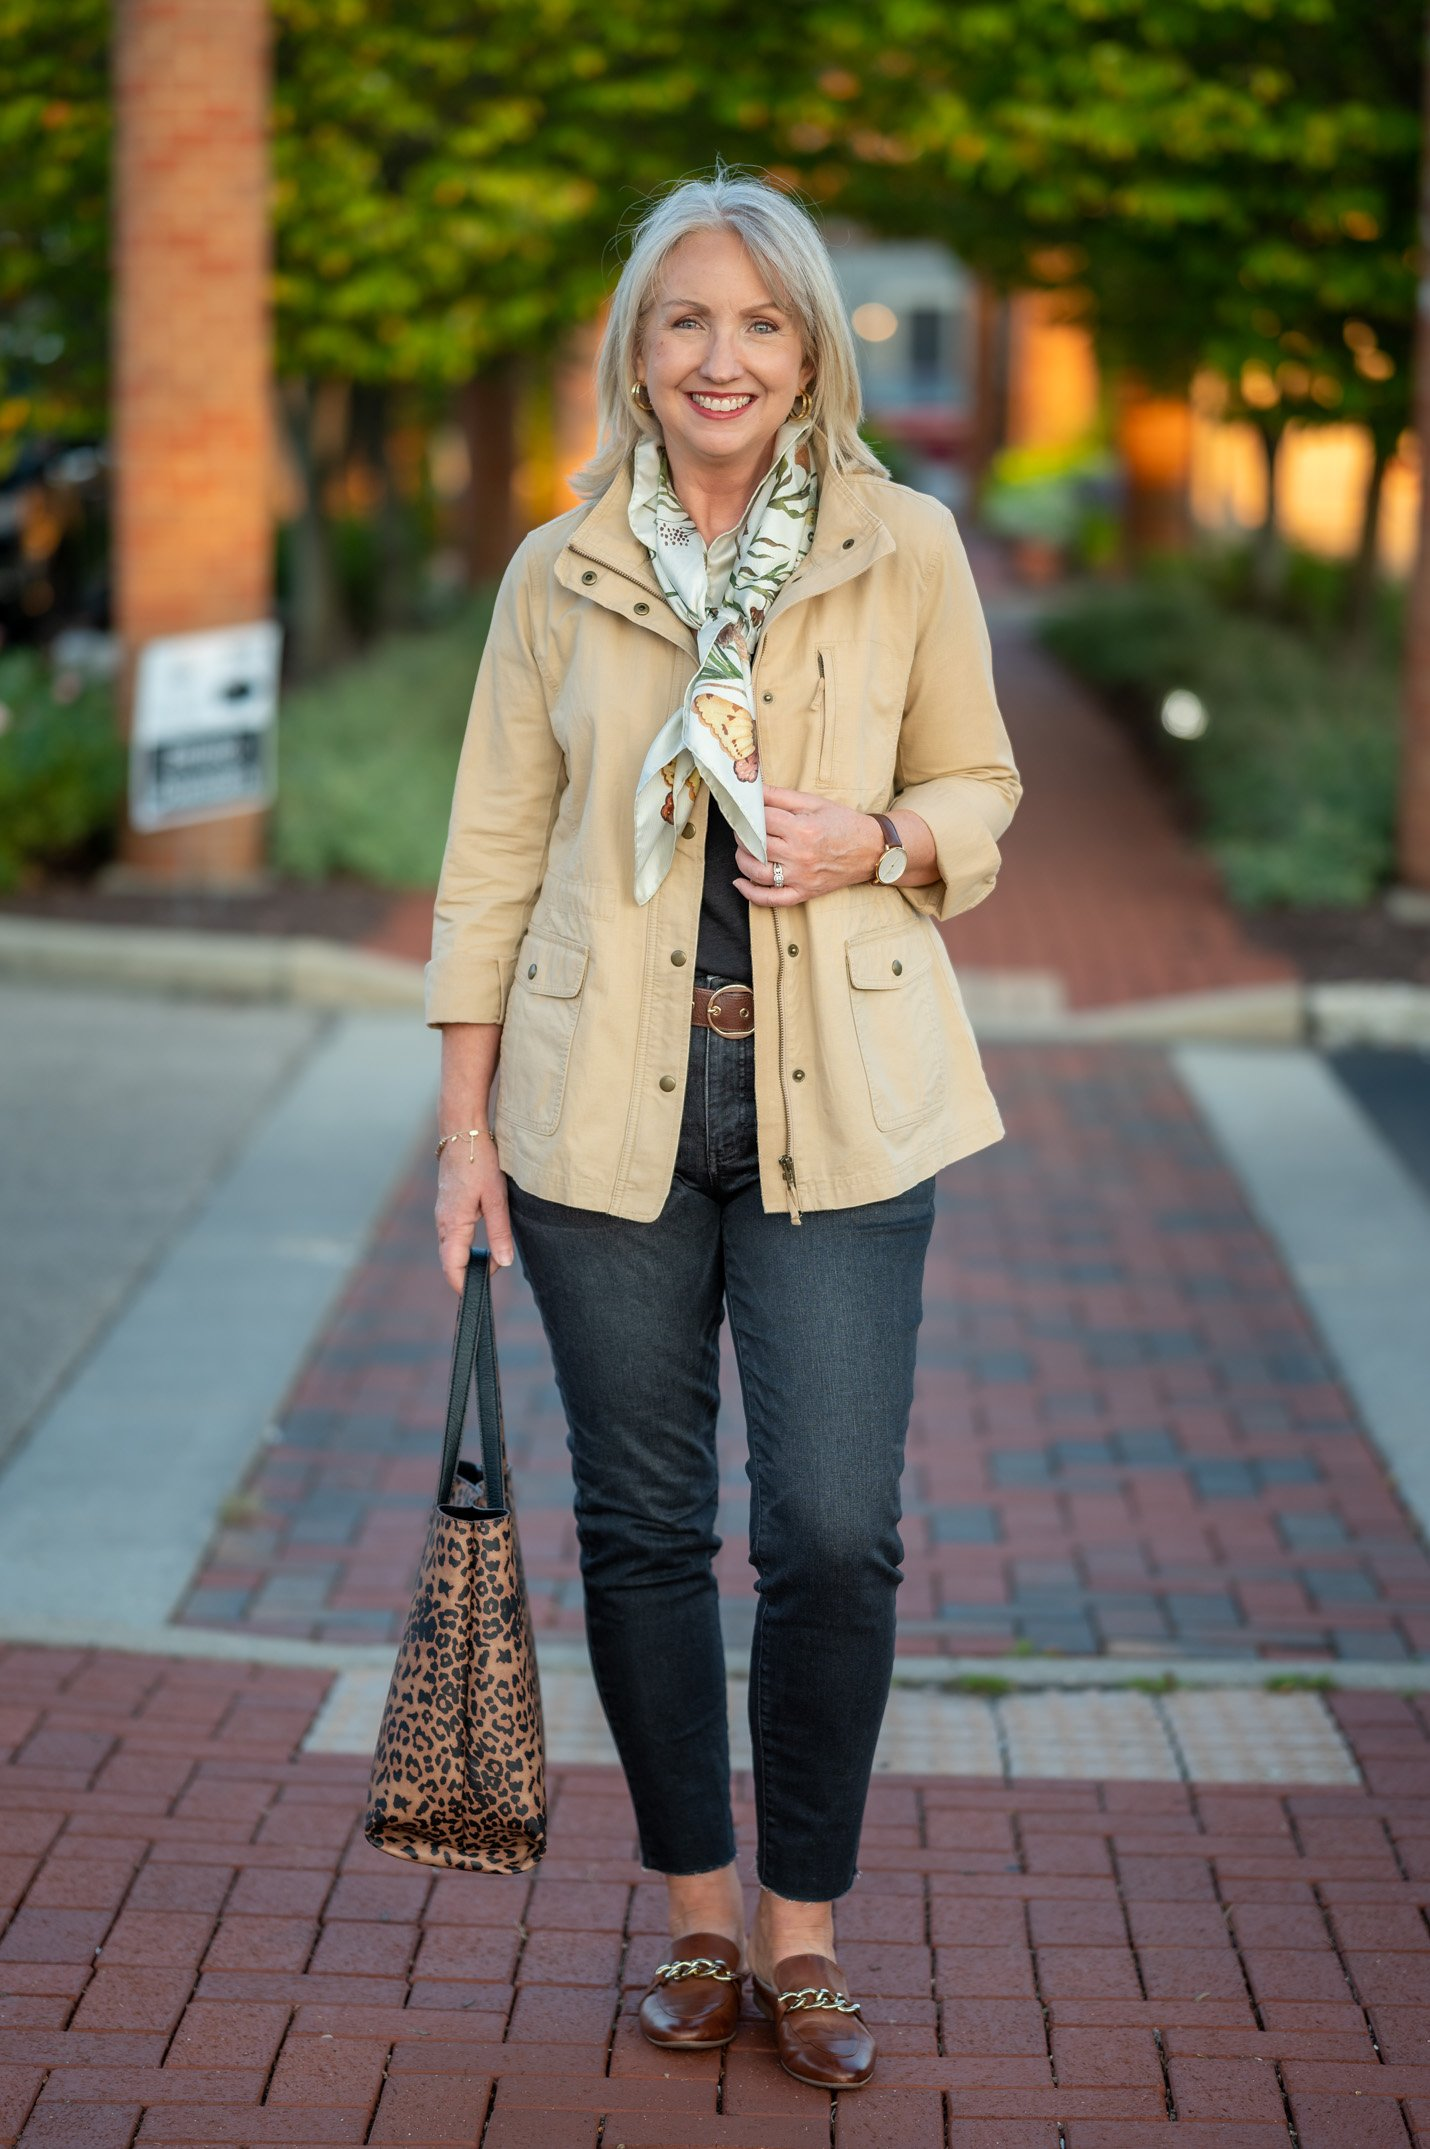 Mixing Neutrals for Fall